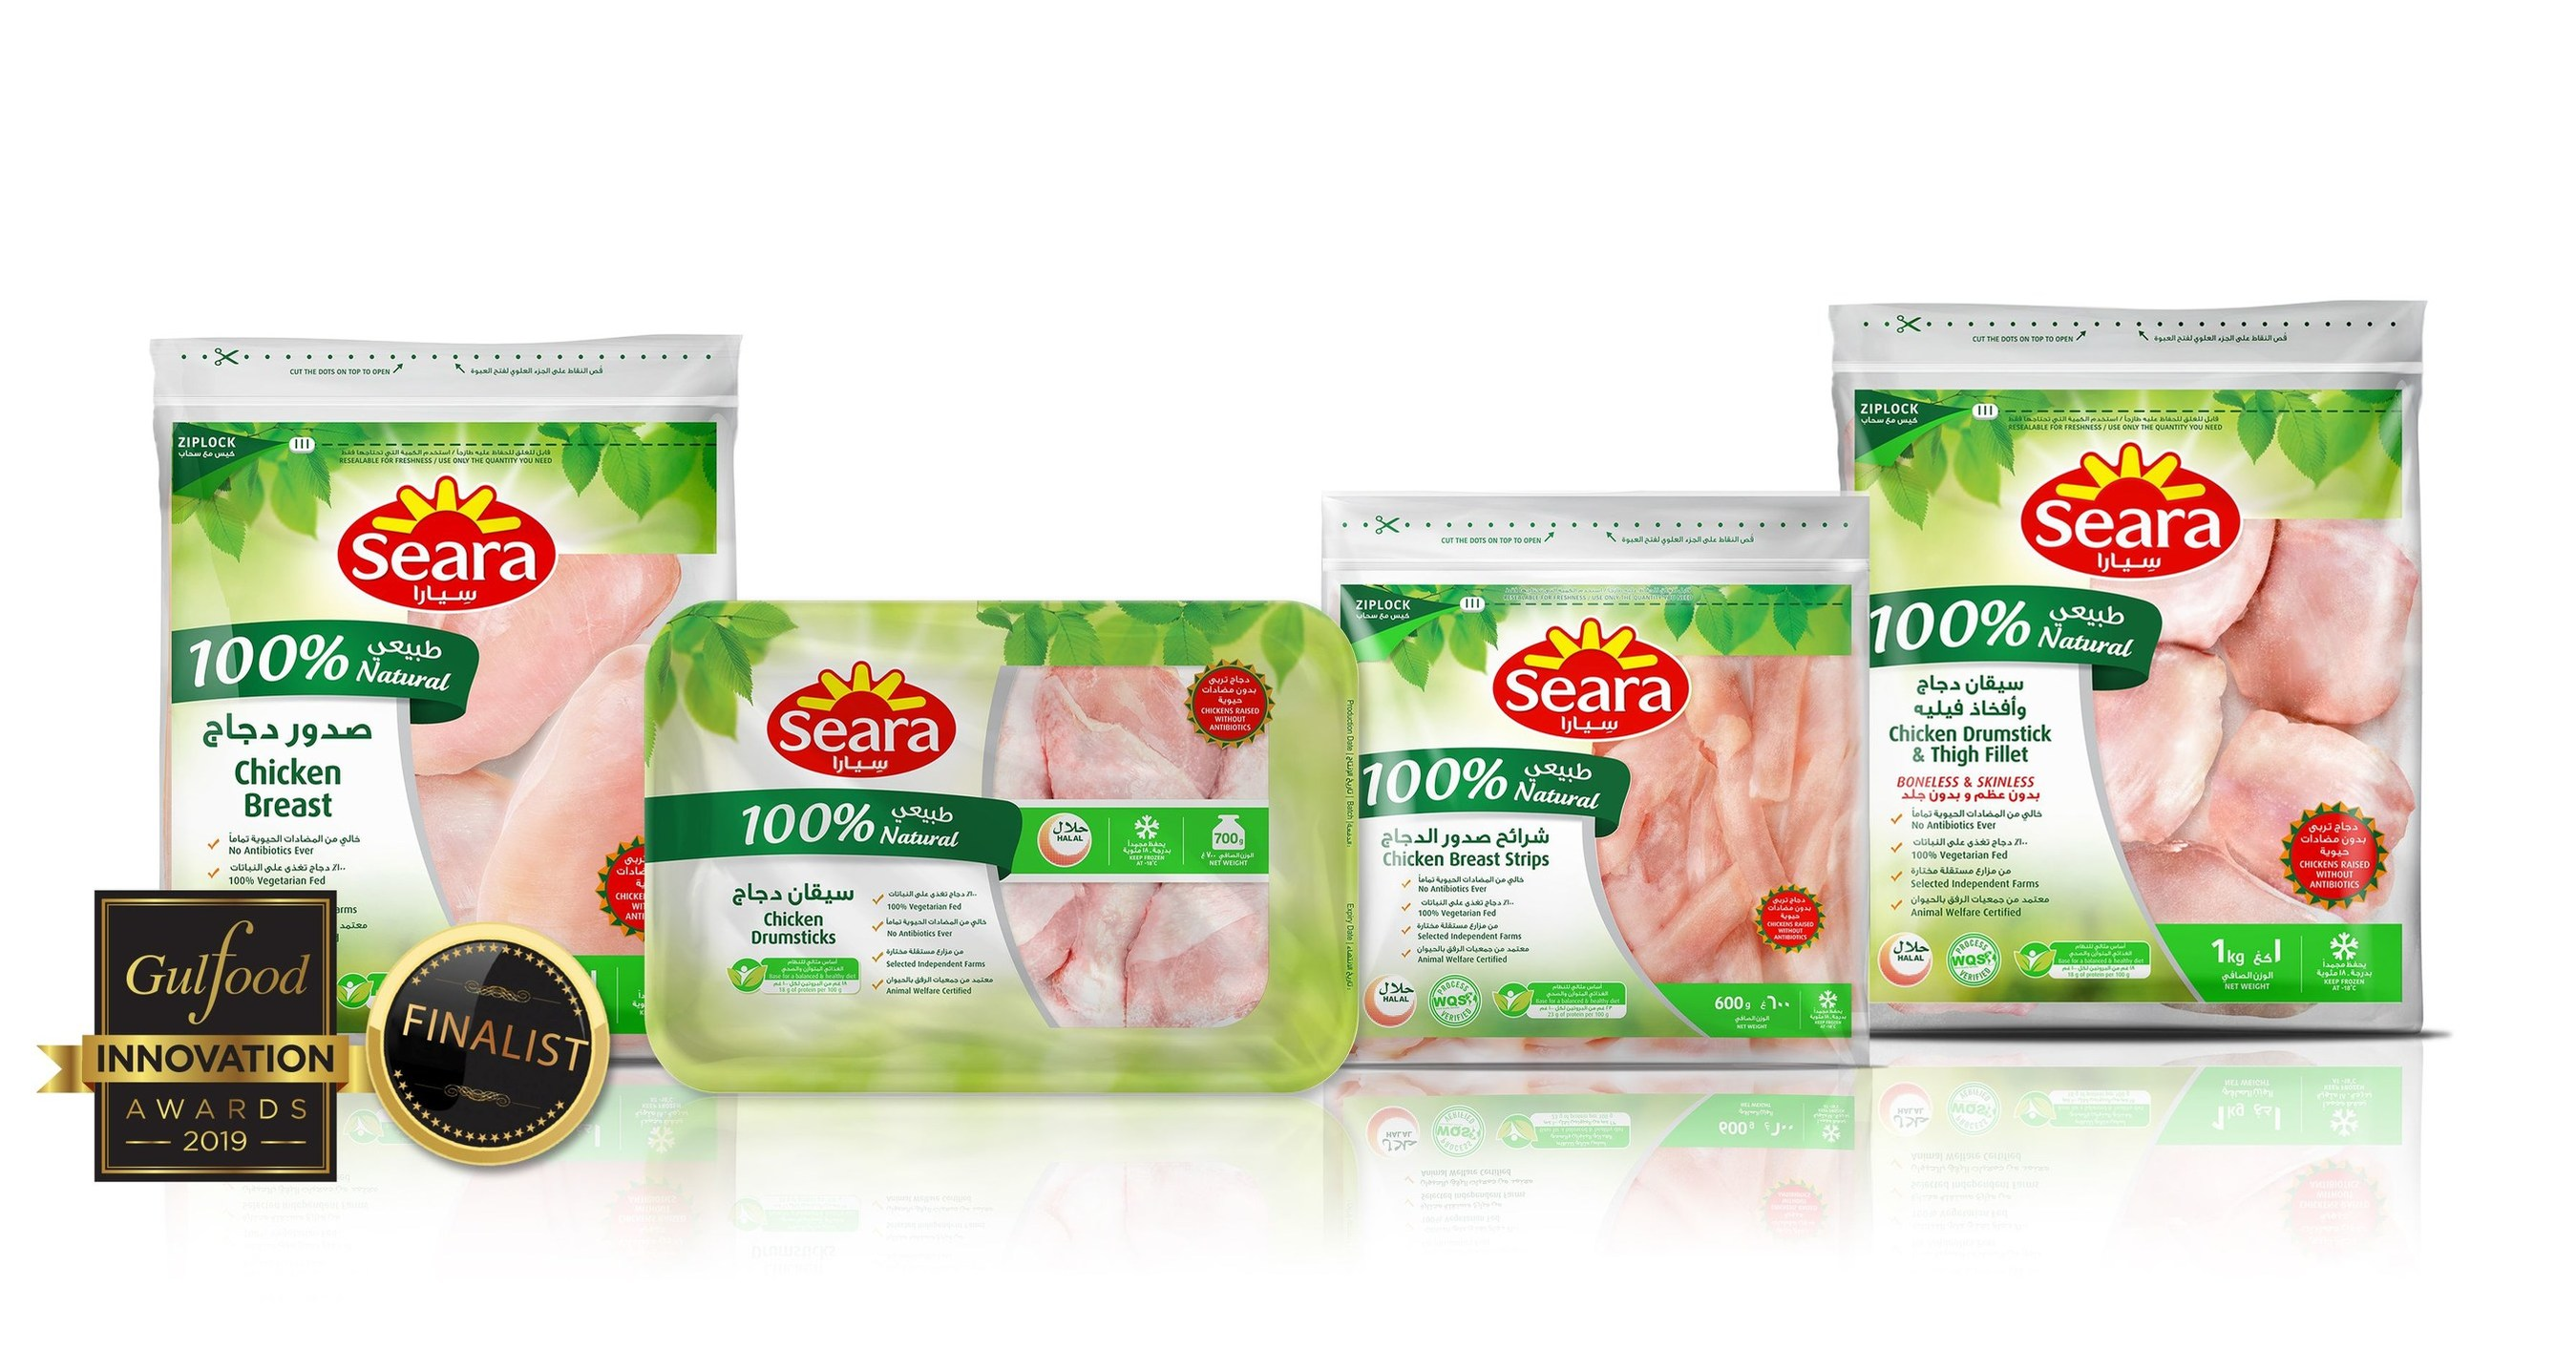 Seara 100% Natural Halal Chicken Selected as Finalist in